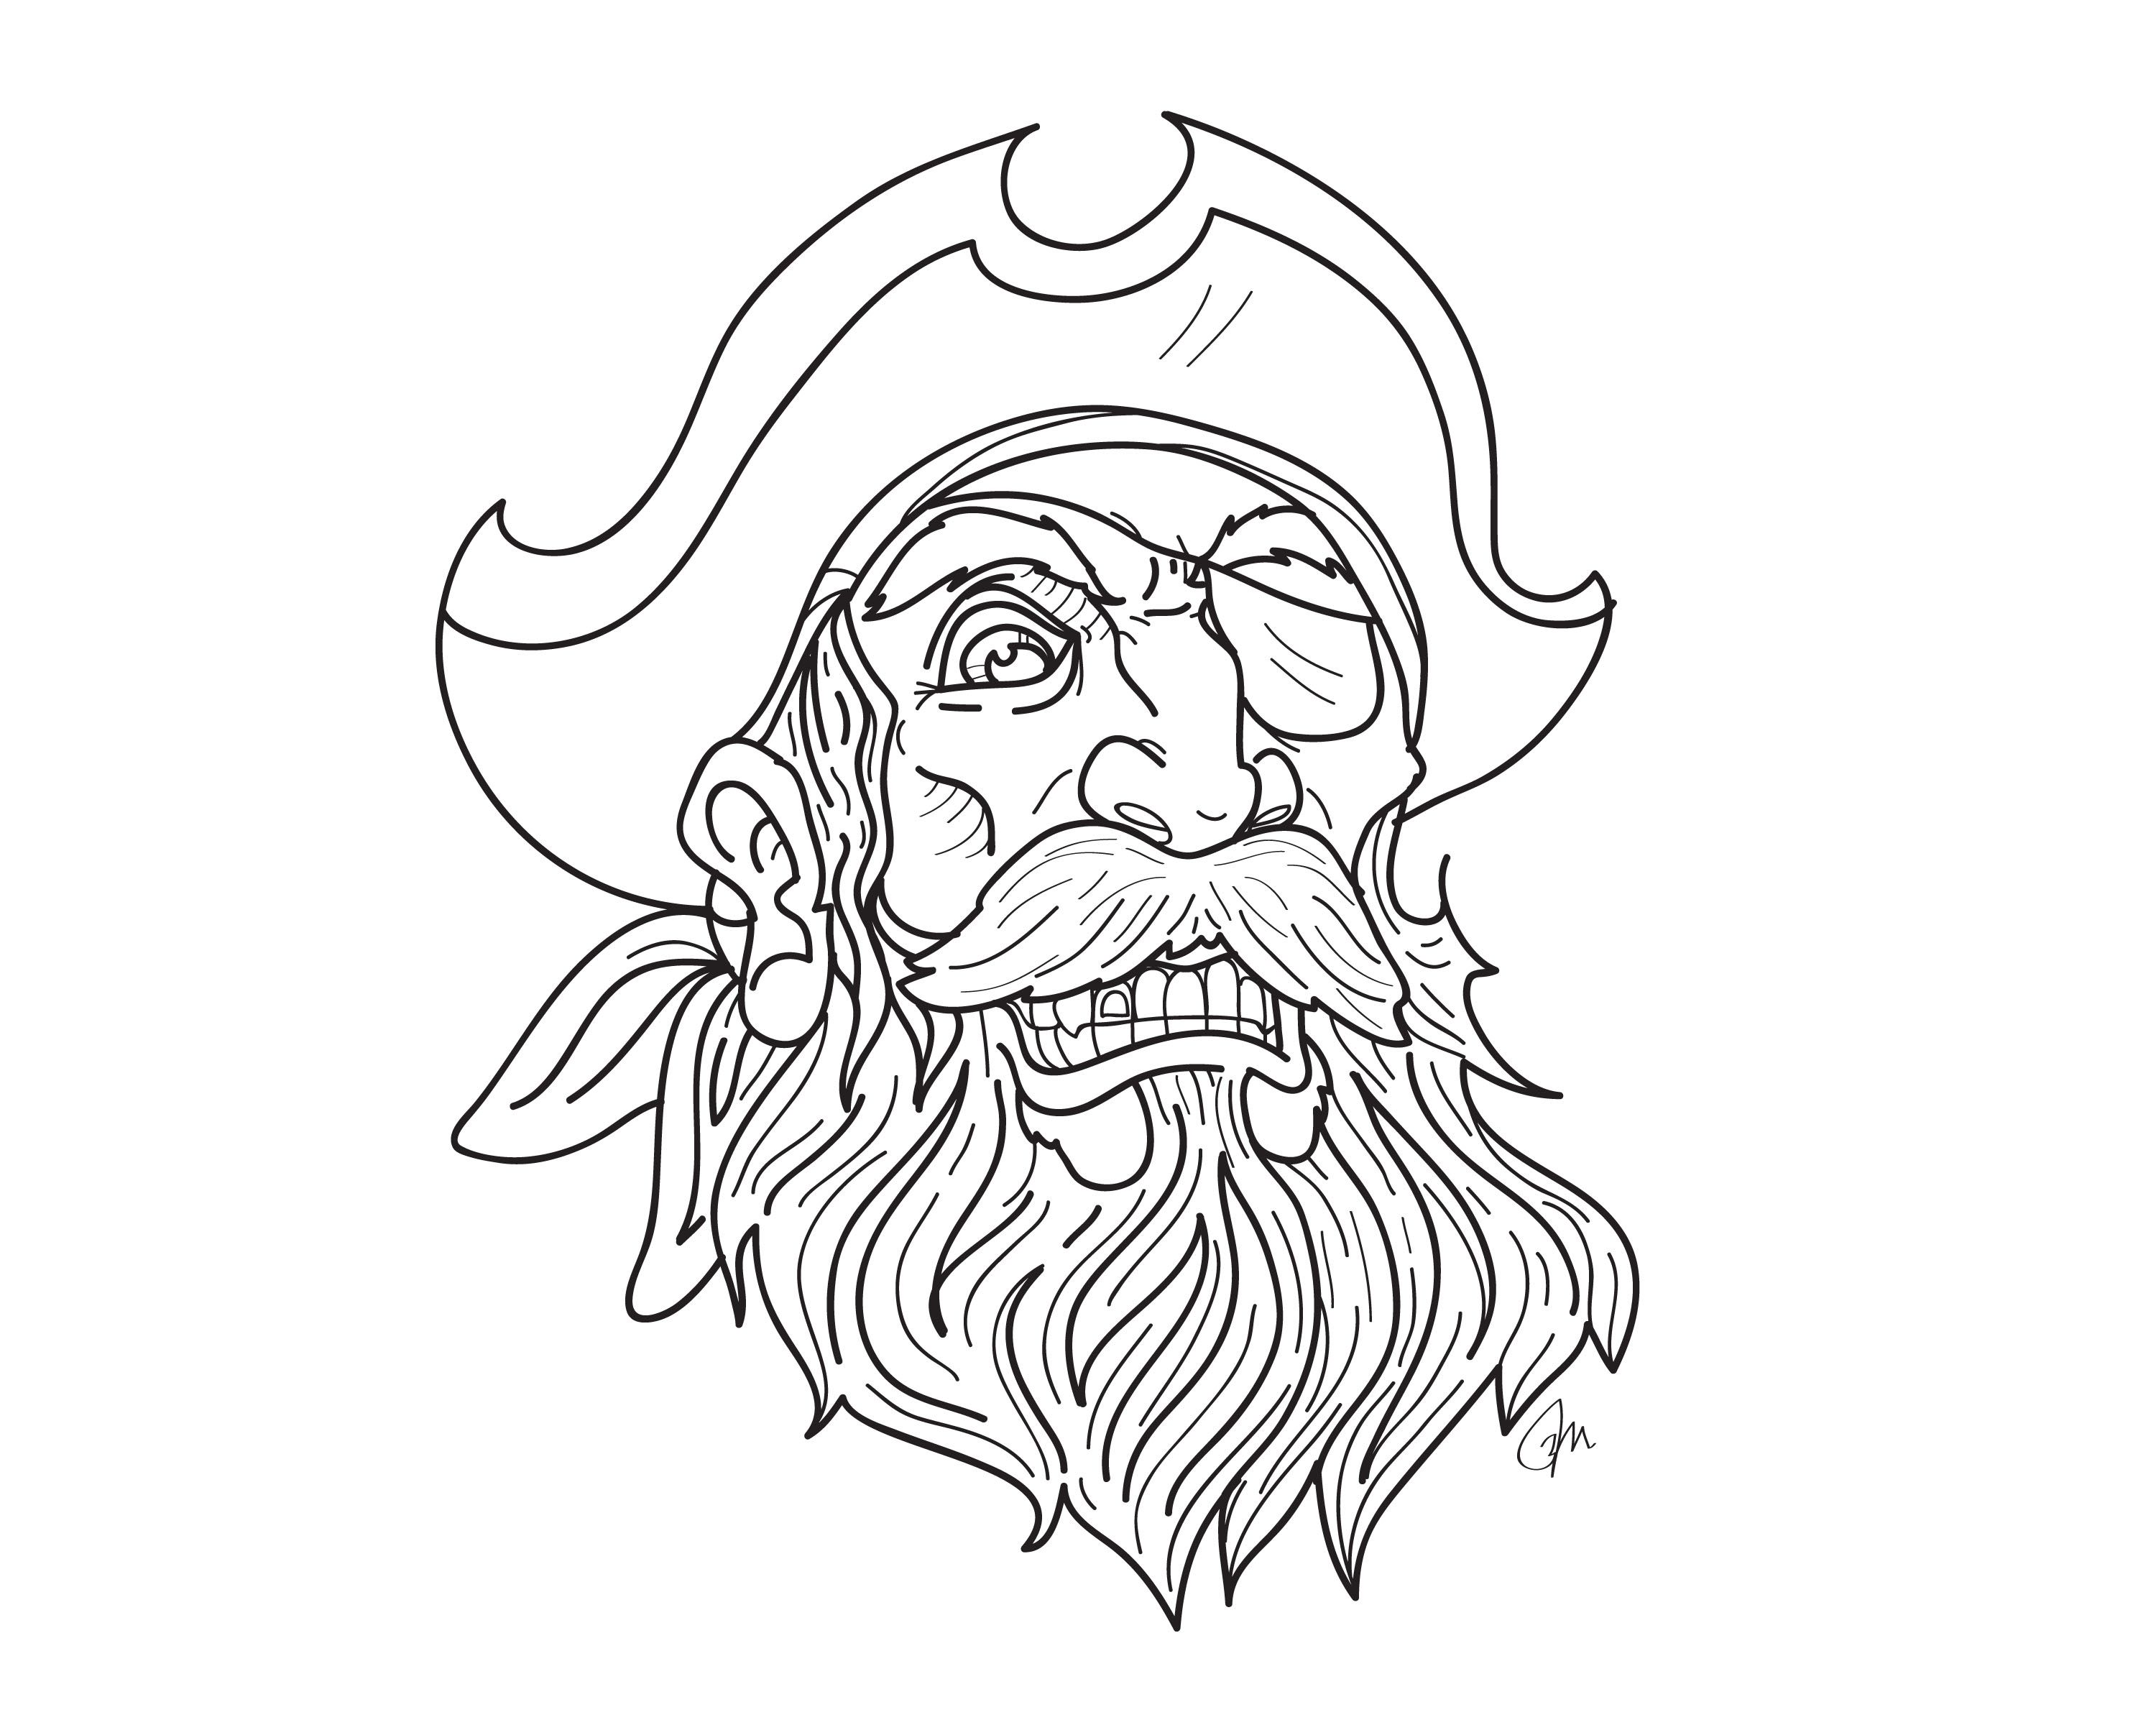 pirate tattoo beard and mustache with gold tooth and eye patch wearing captains hat coloring page